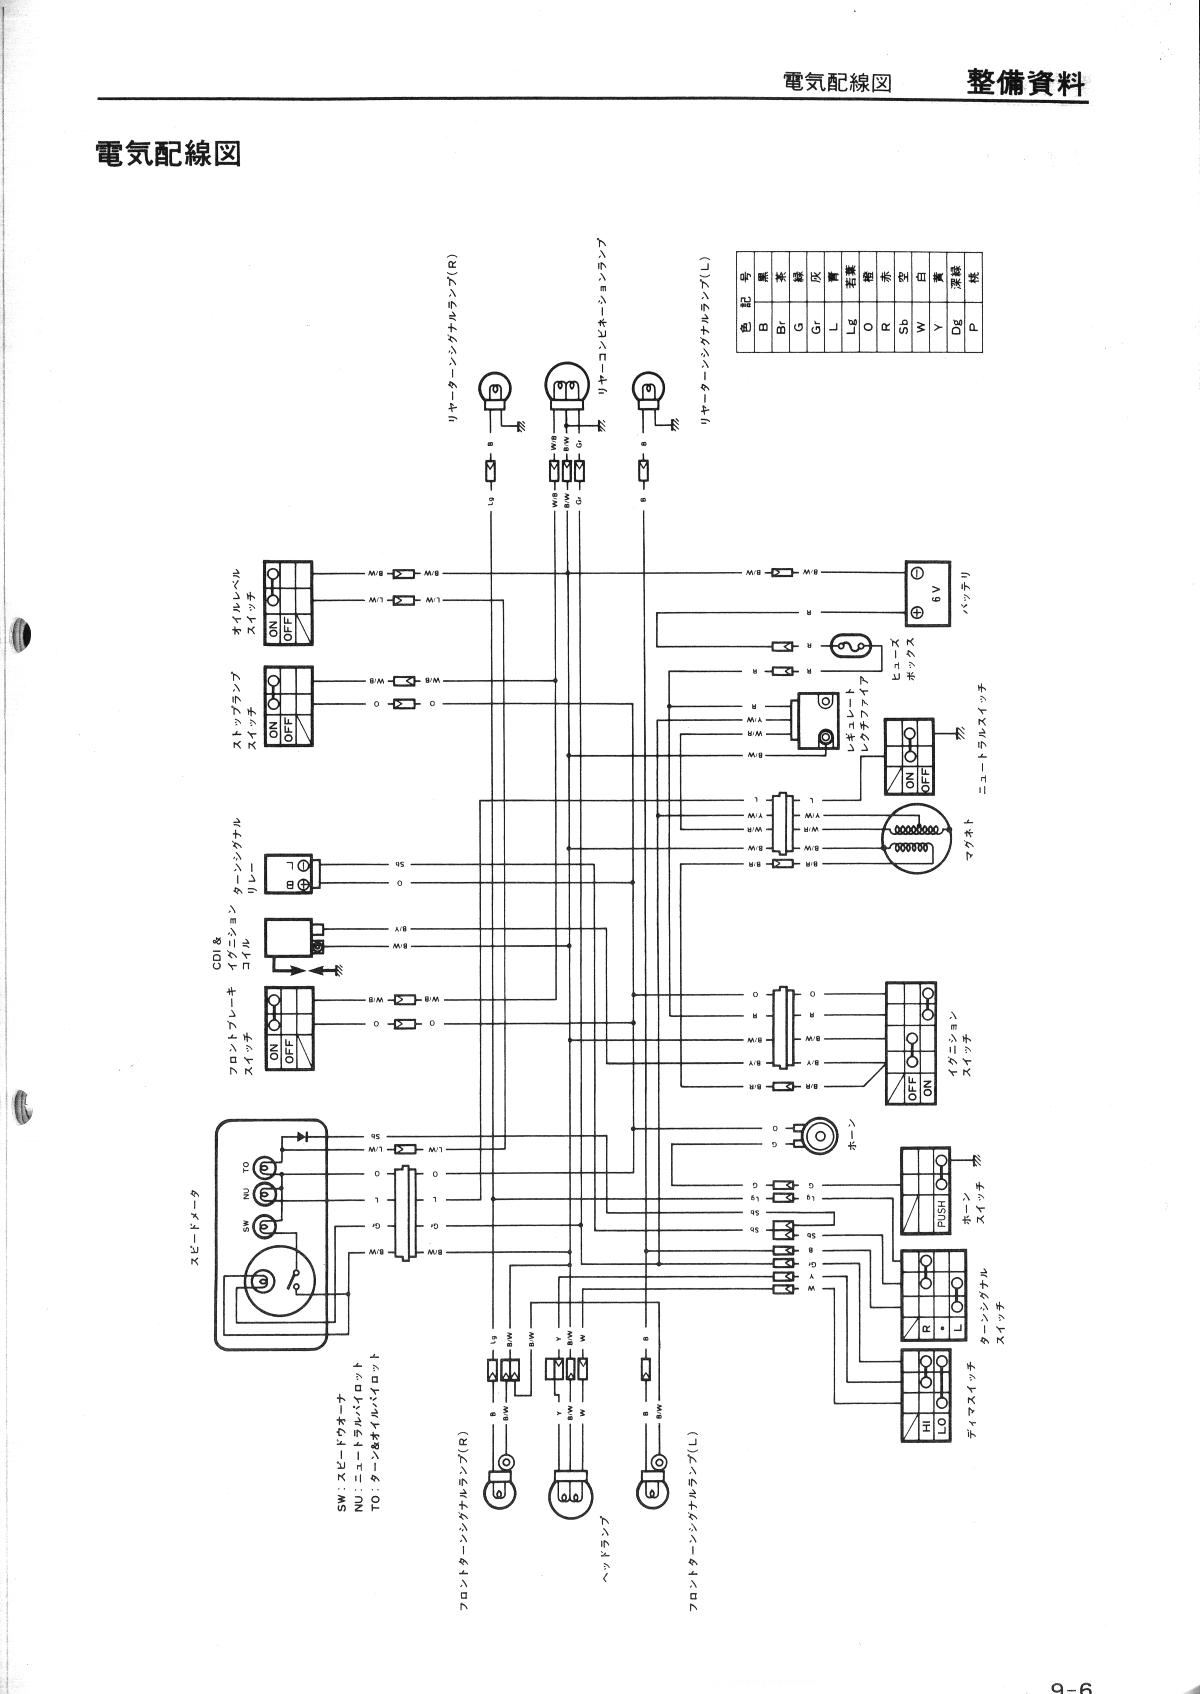 How To Wire A Shunt Trip Breaker Wiring Diagram